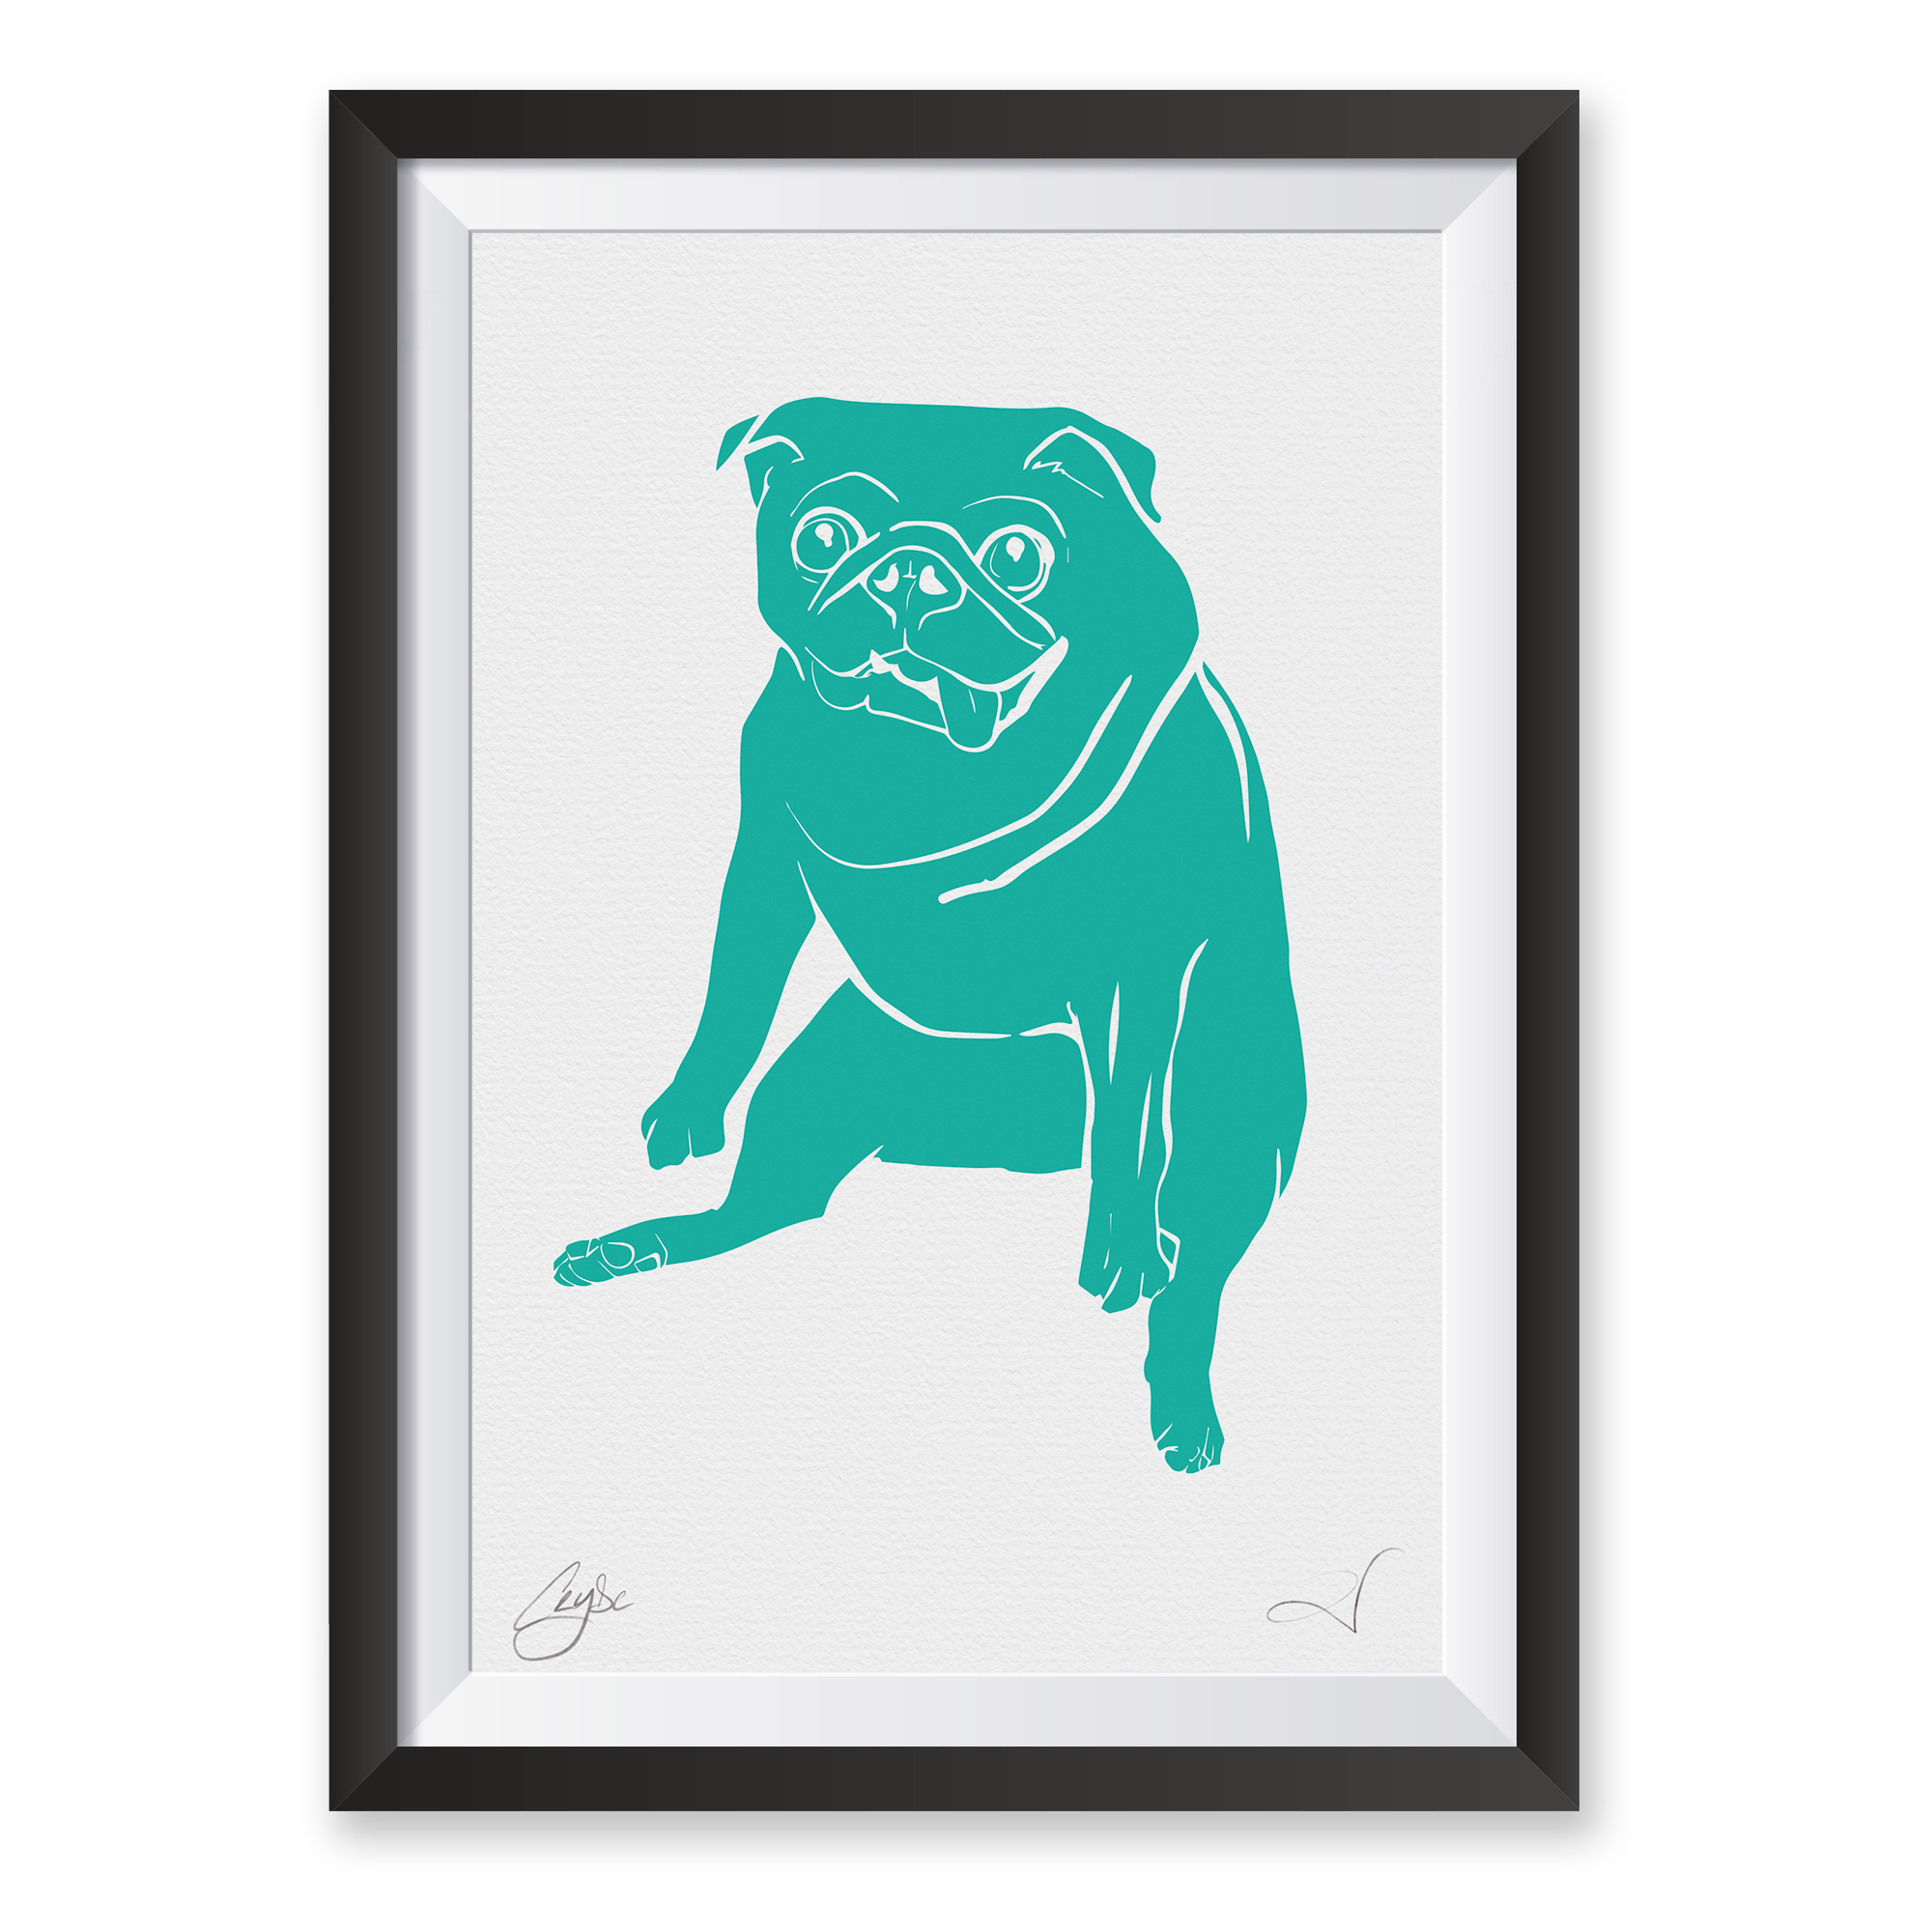 FRAMED_CLYDE_PRINT__0003_TEAL.png